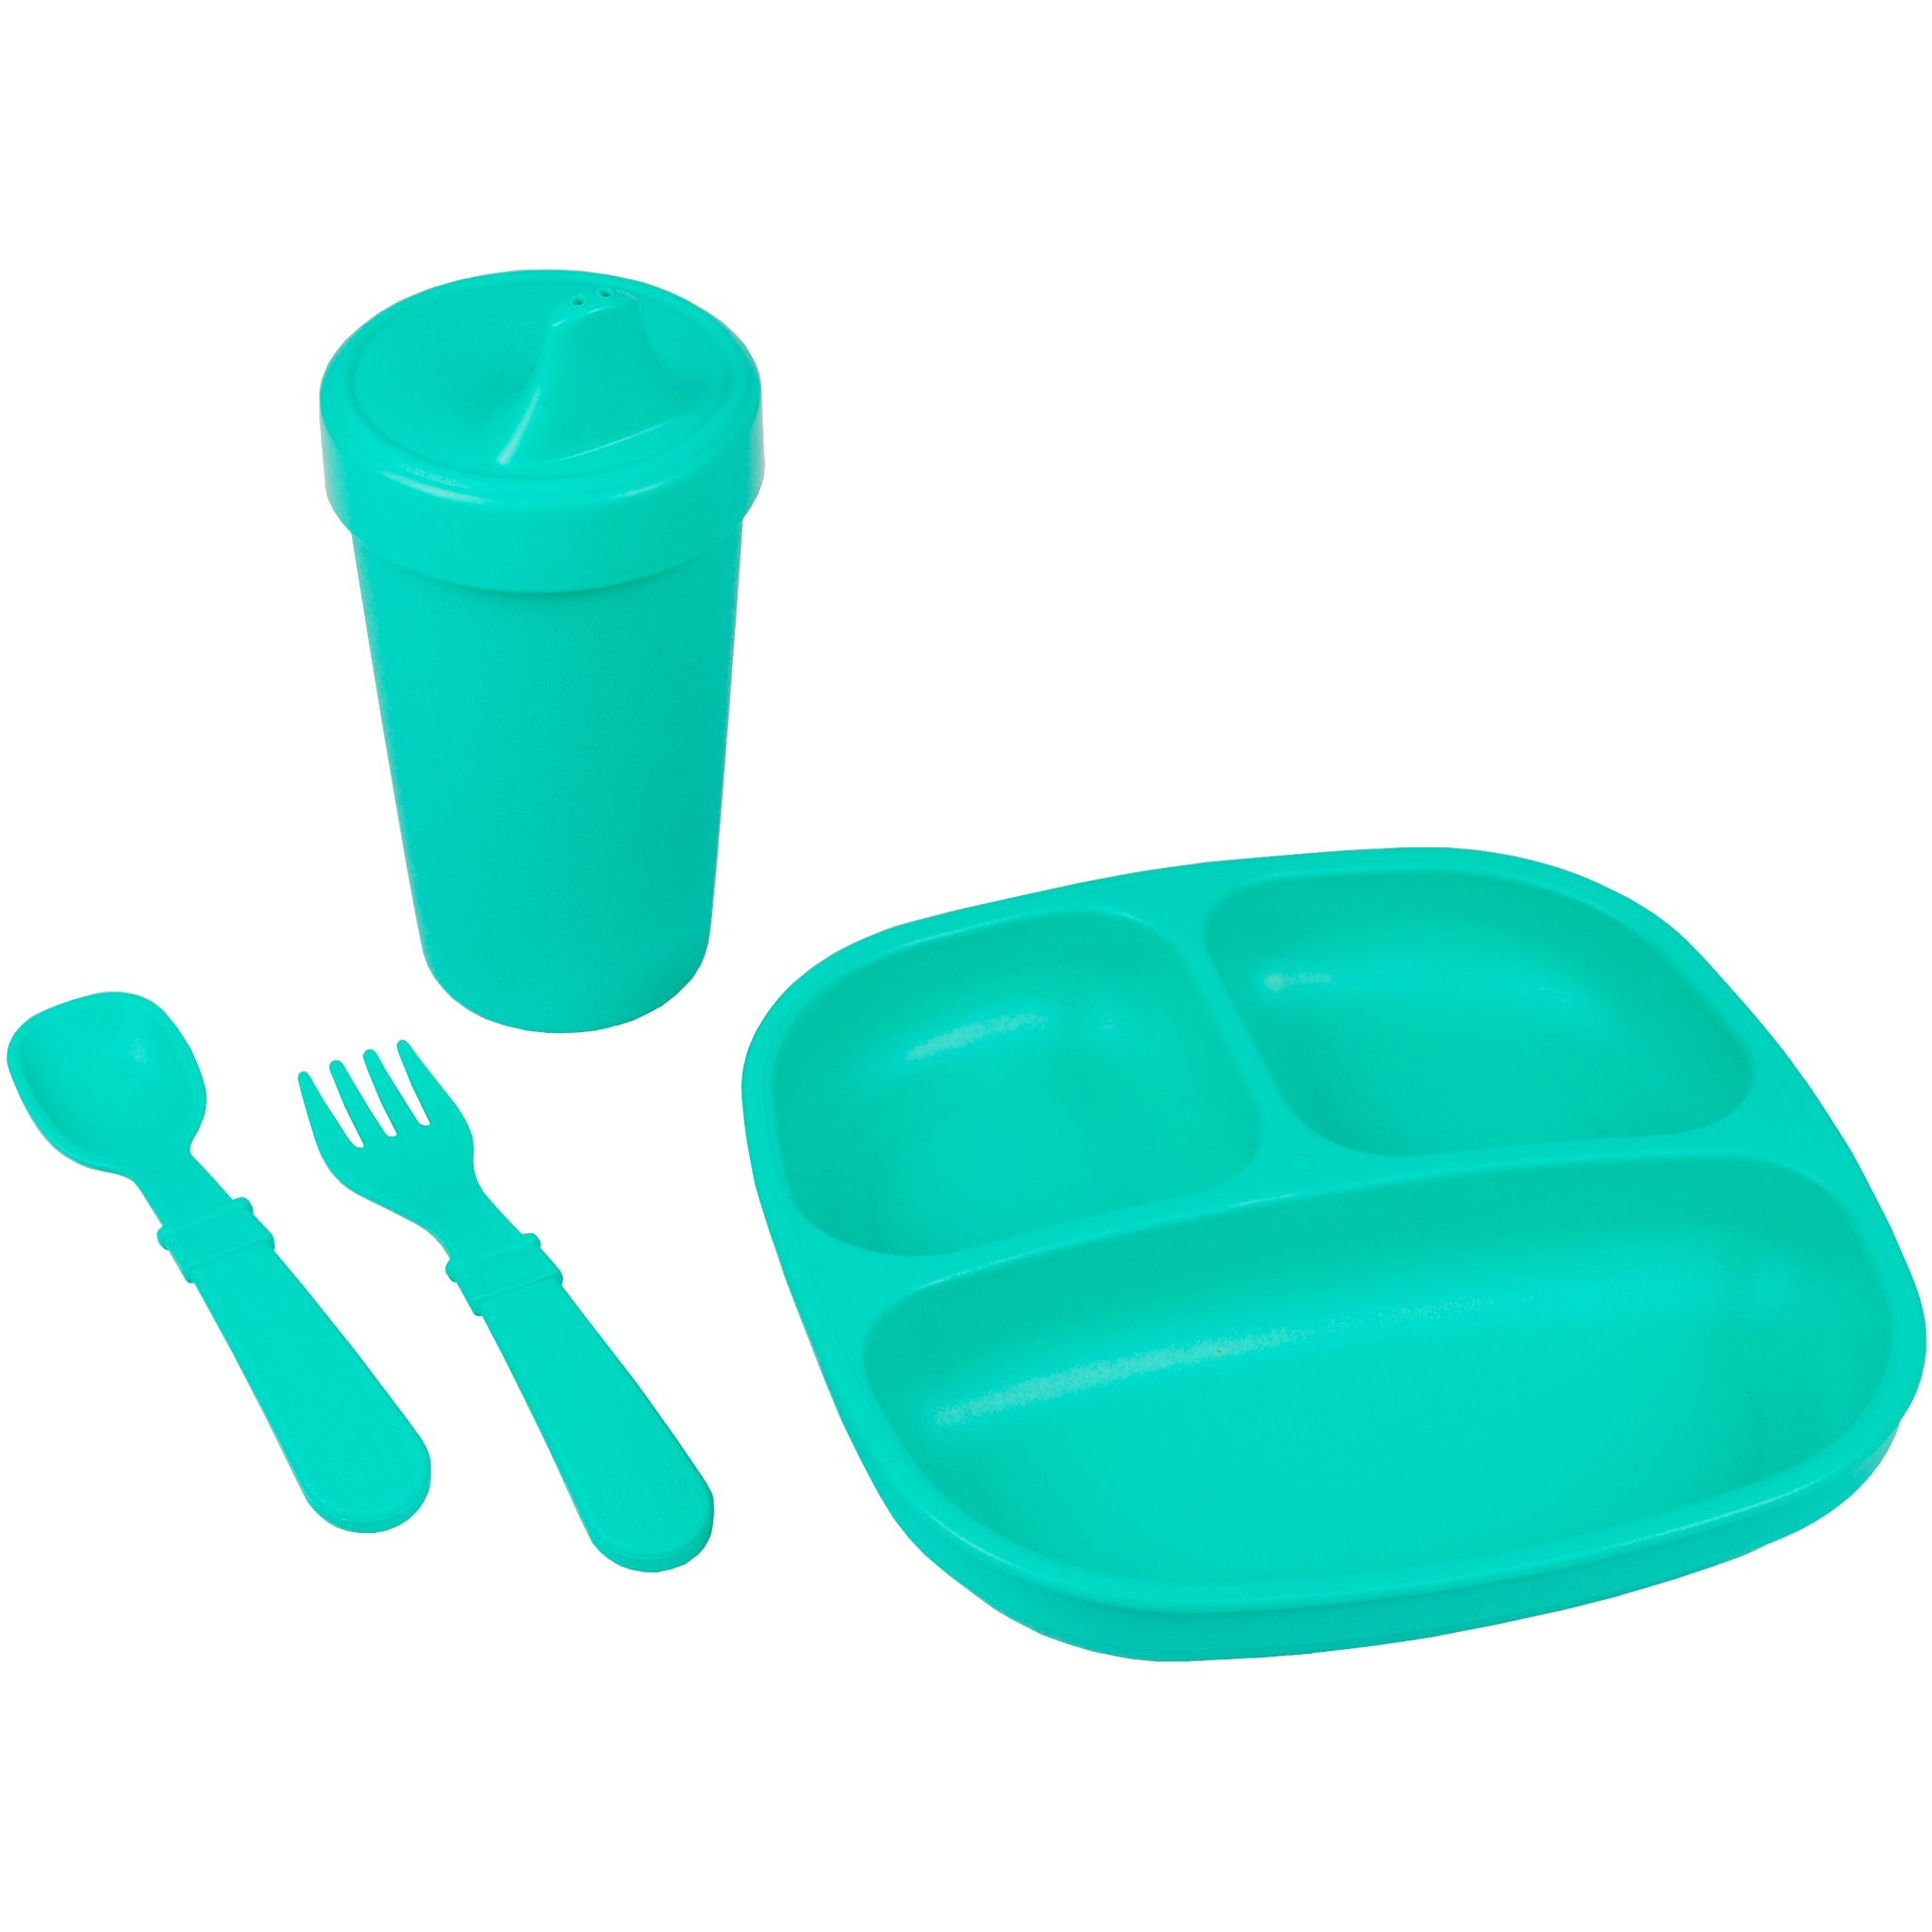 Re-Play Made in The USA Toddler Diner Set | Divided Plate, No Spill Sippy Cup, Utensil Set | Eco Friendly Heavyweight Recycled Milk Jugs - Virtually Indestructible | Aqua